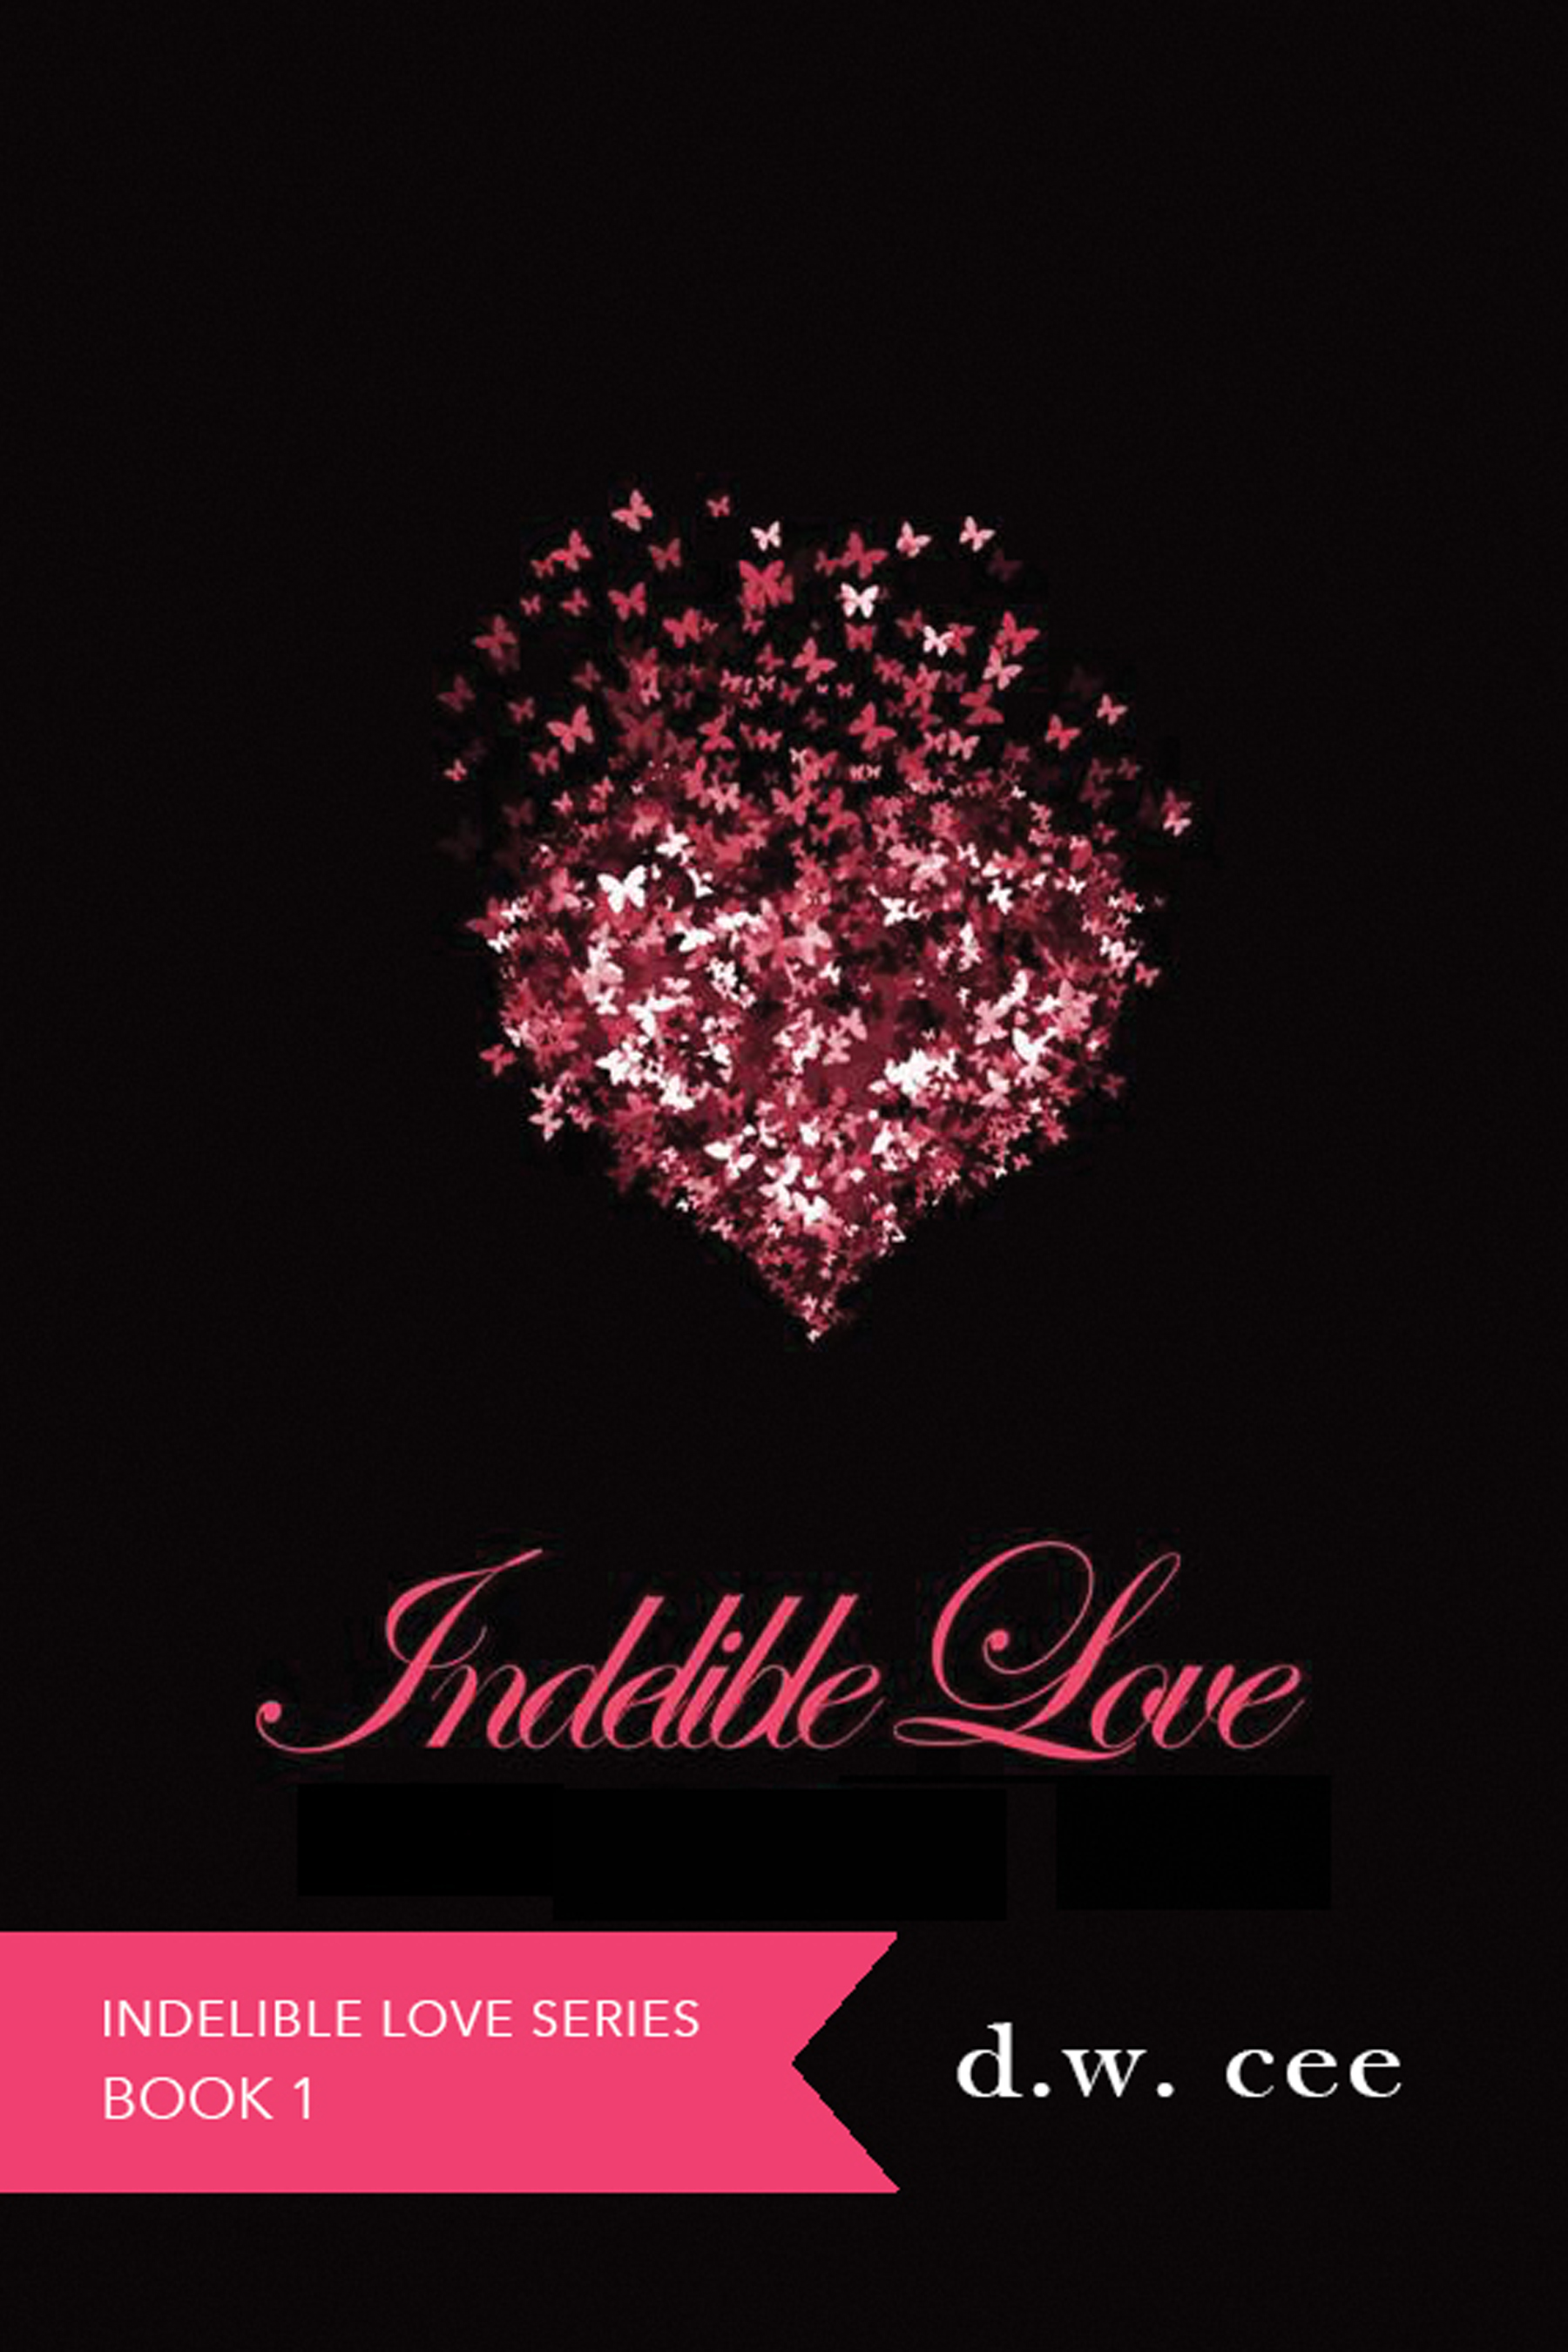 IndelibleLoveFINAL